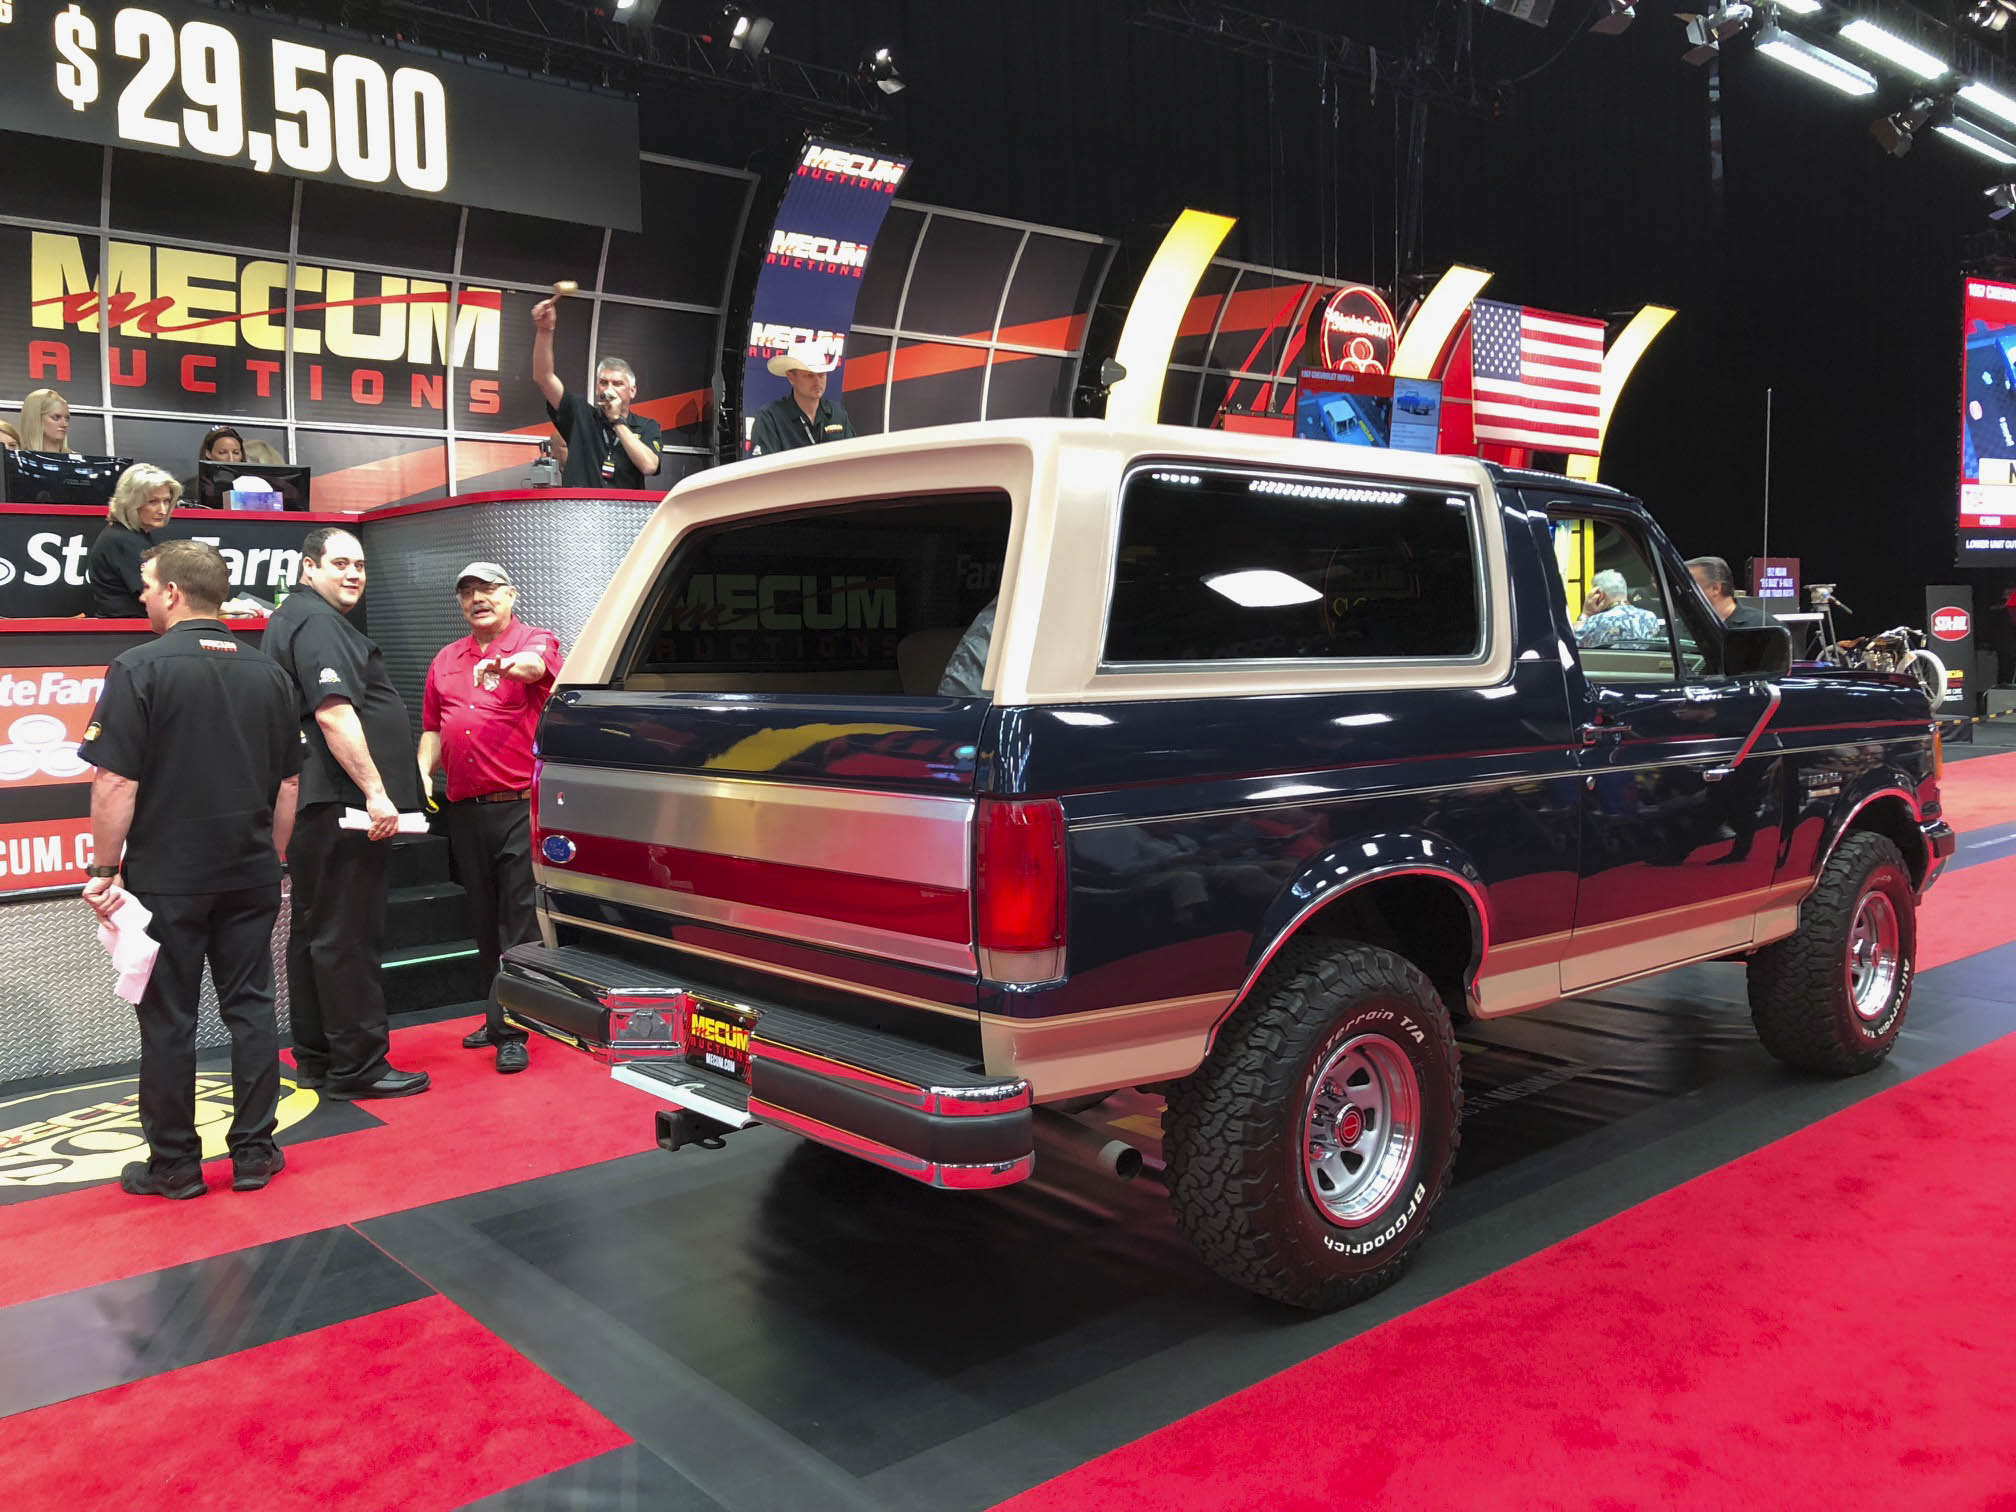 1989 Ford Bronco crossing the block at Mecum